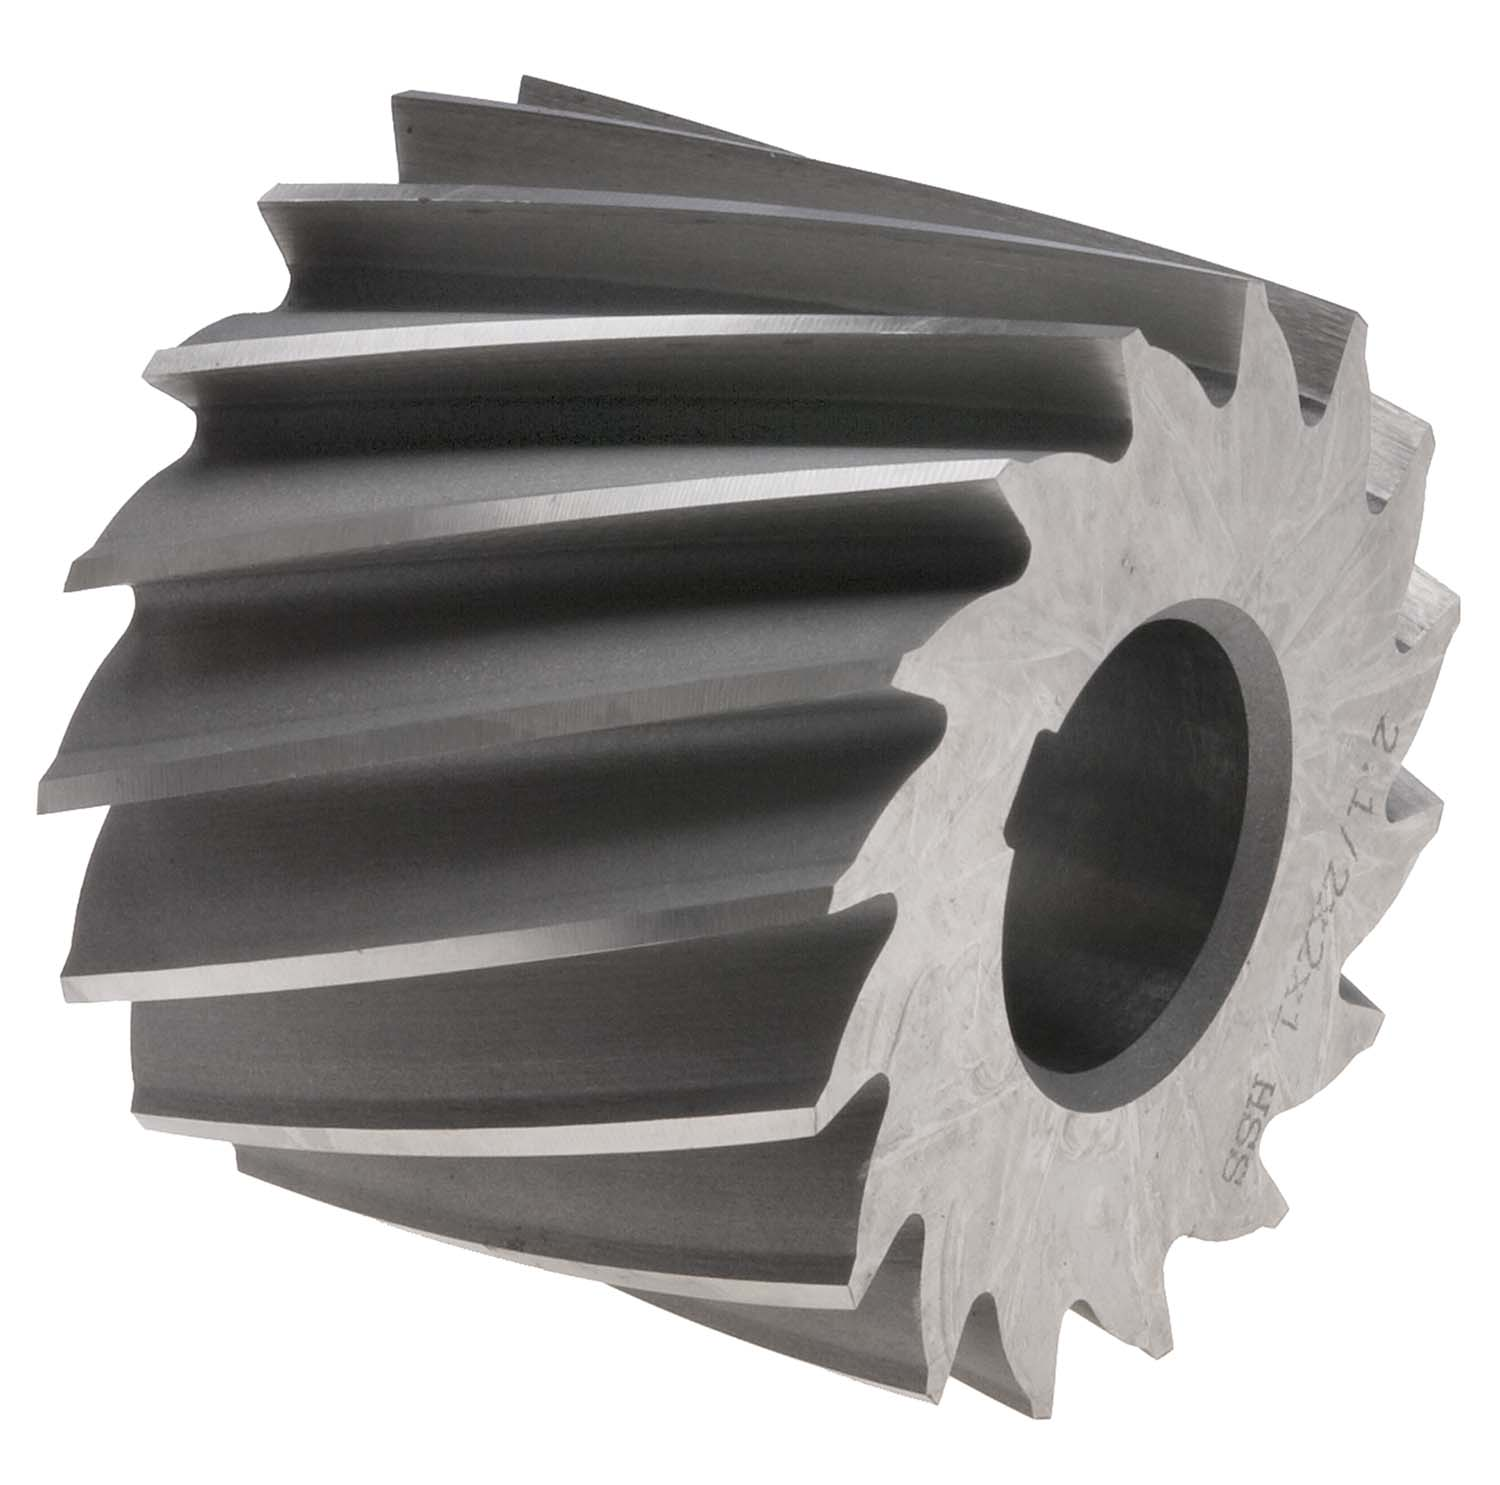 3 1/2 X 3/8 X 1 Plain Milling Cutter, High Speed Steel